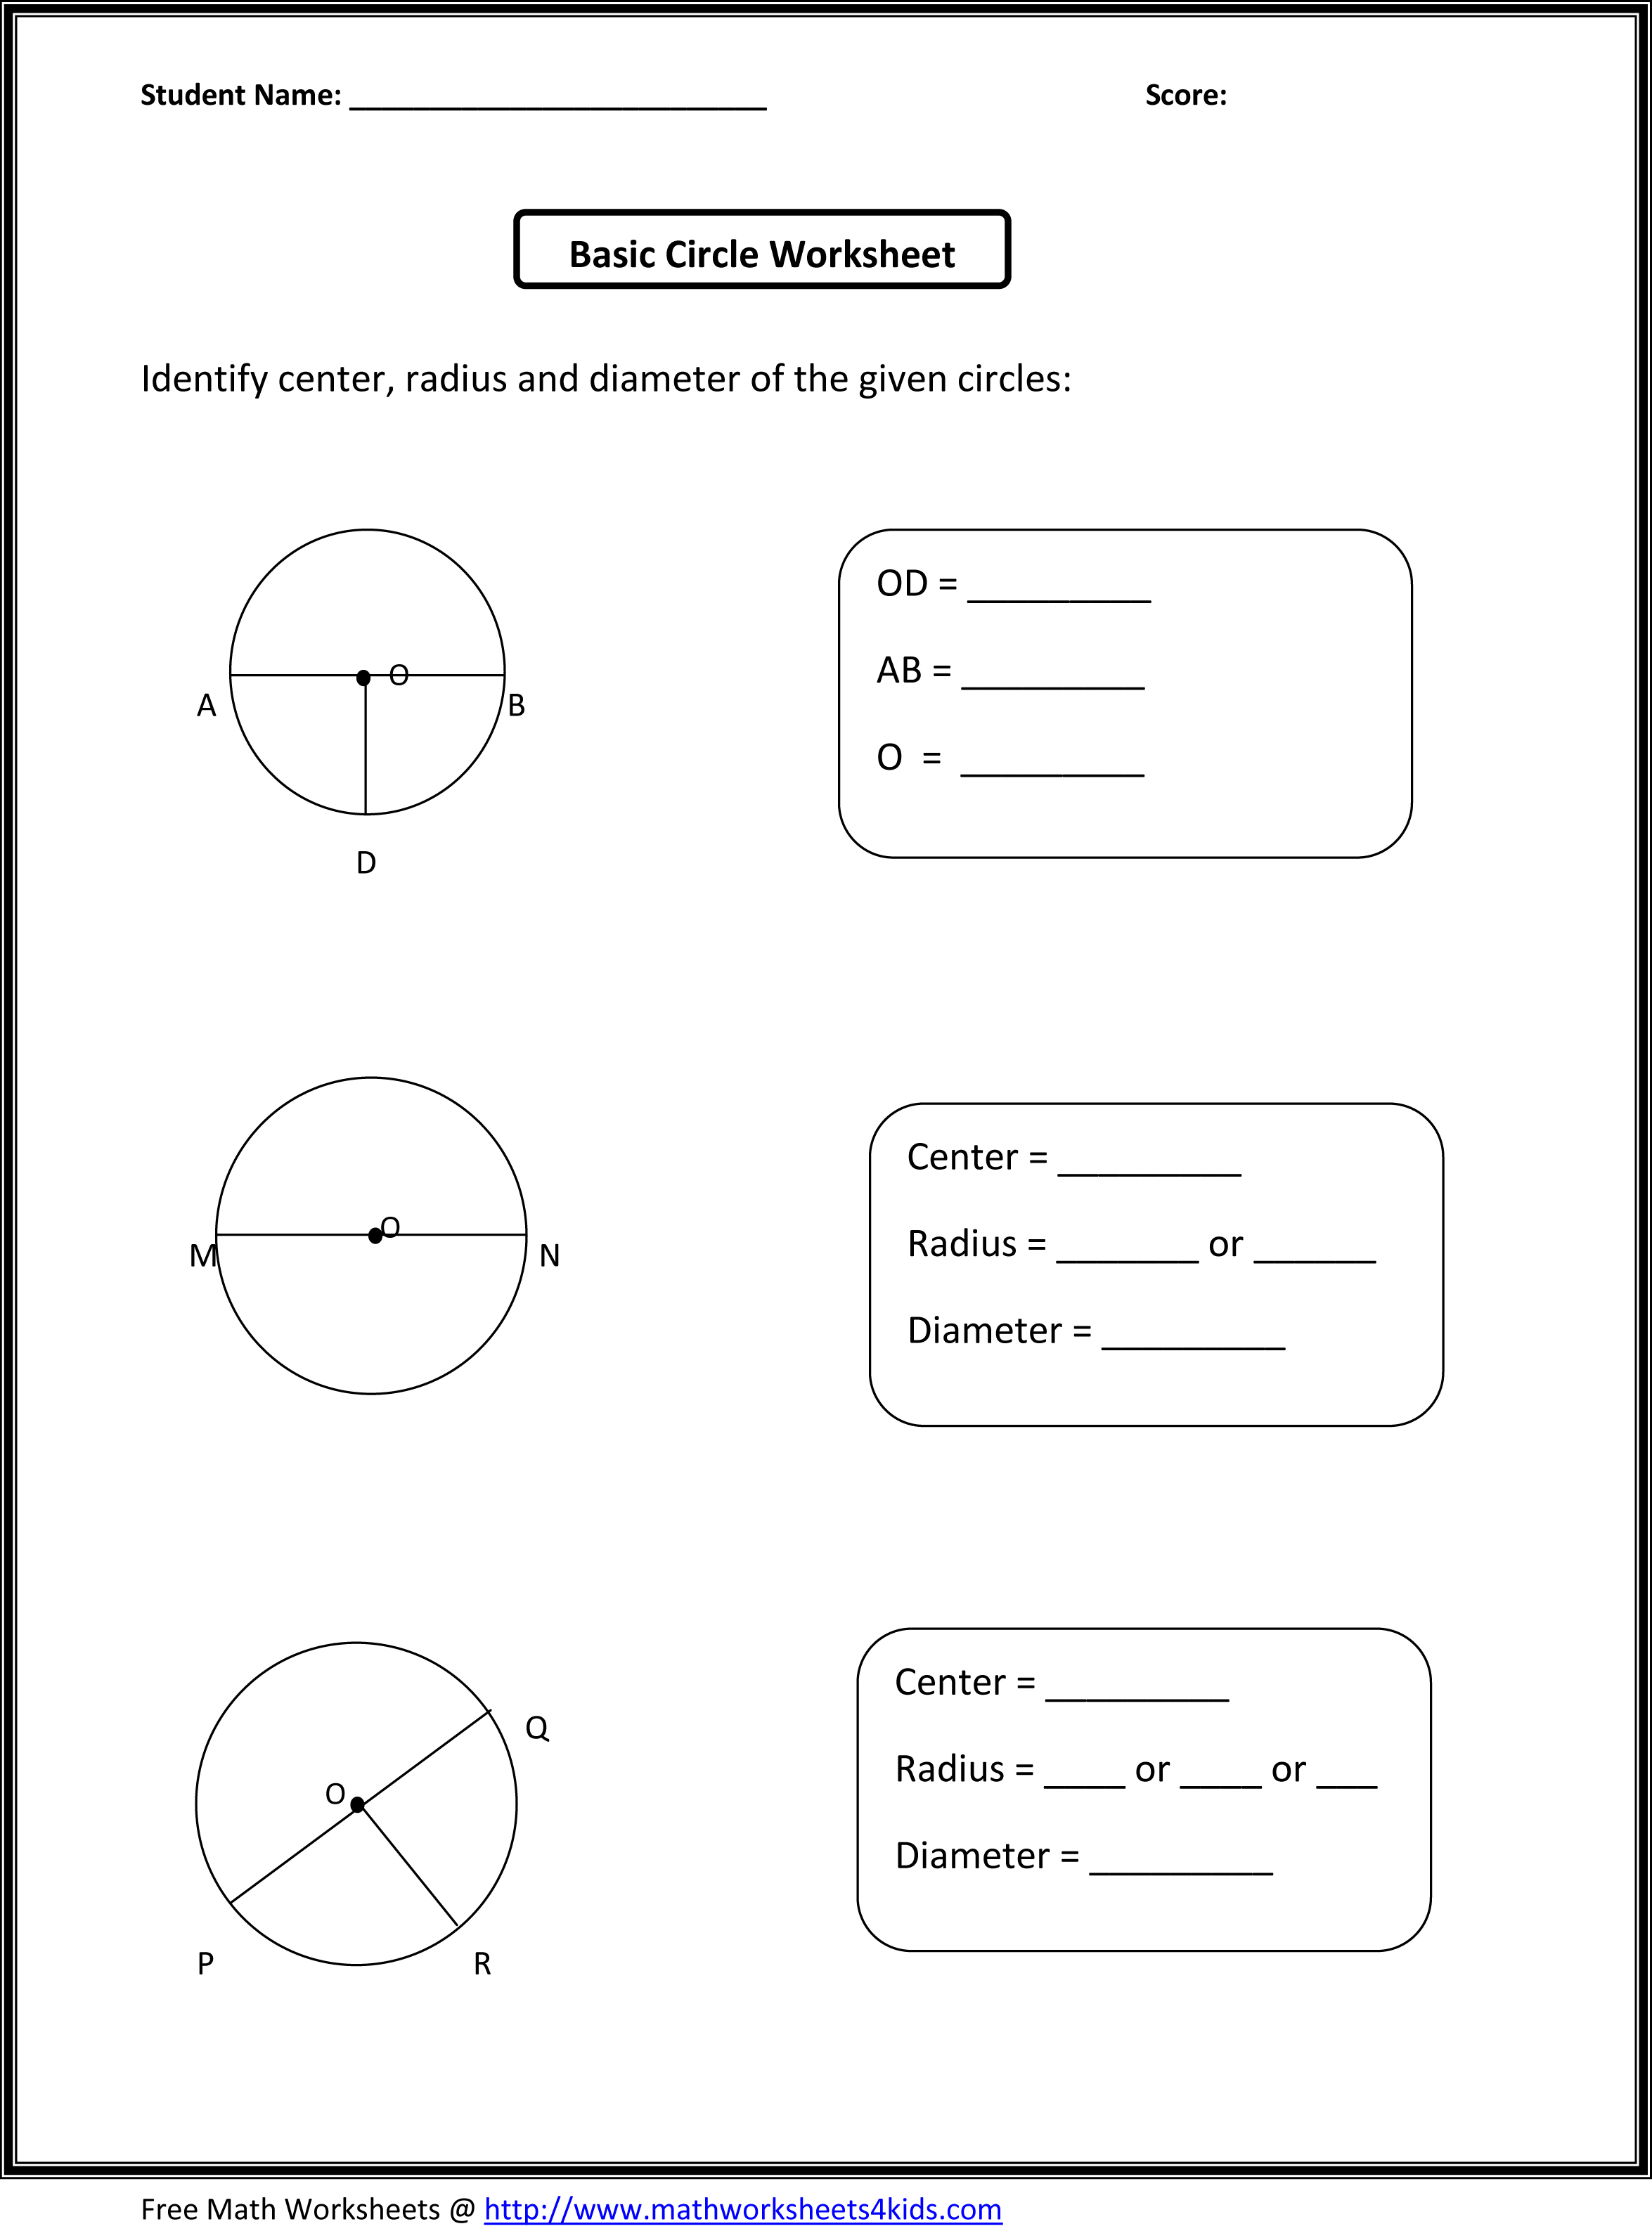 10 Best Images Of Christmas Math Worksheets 3rd Grade